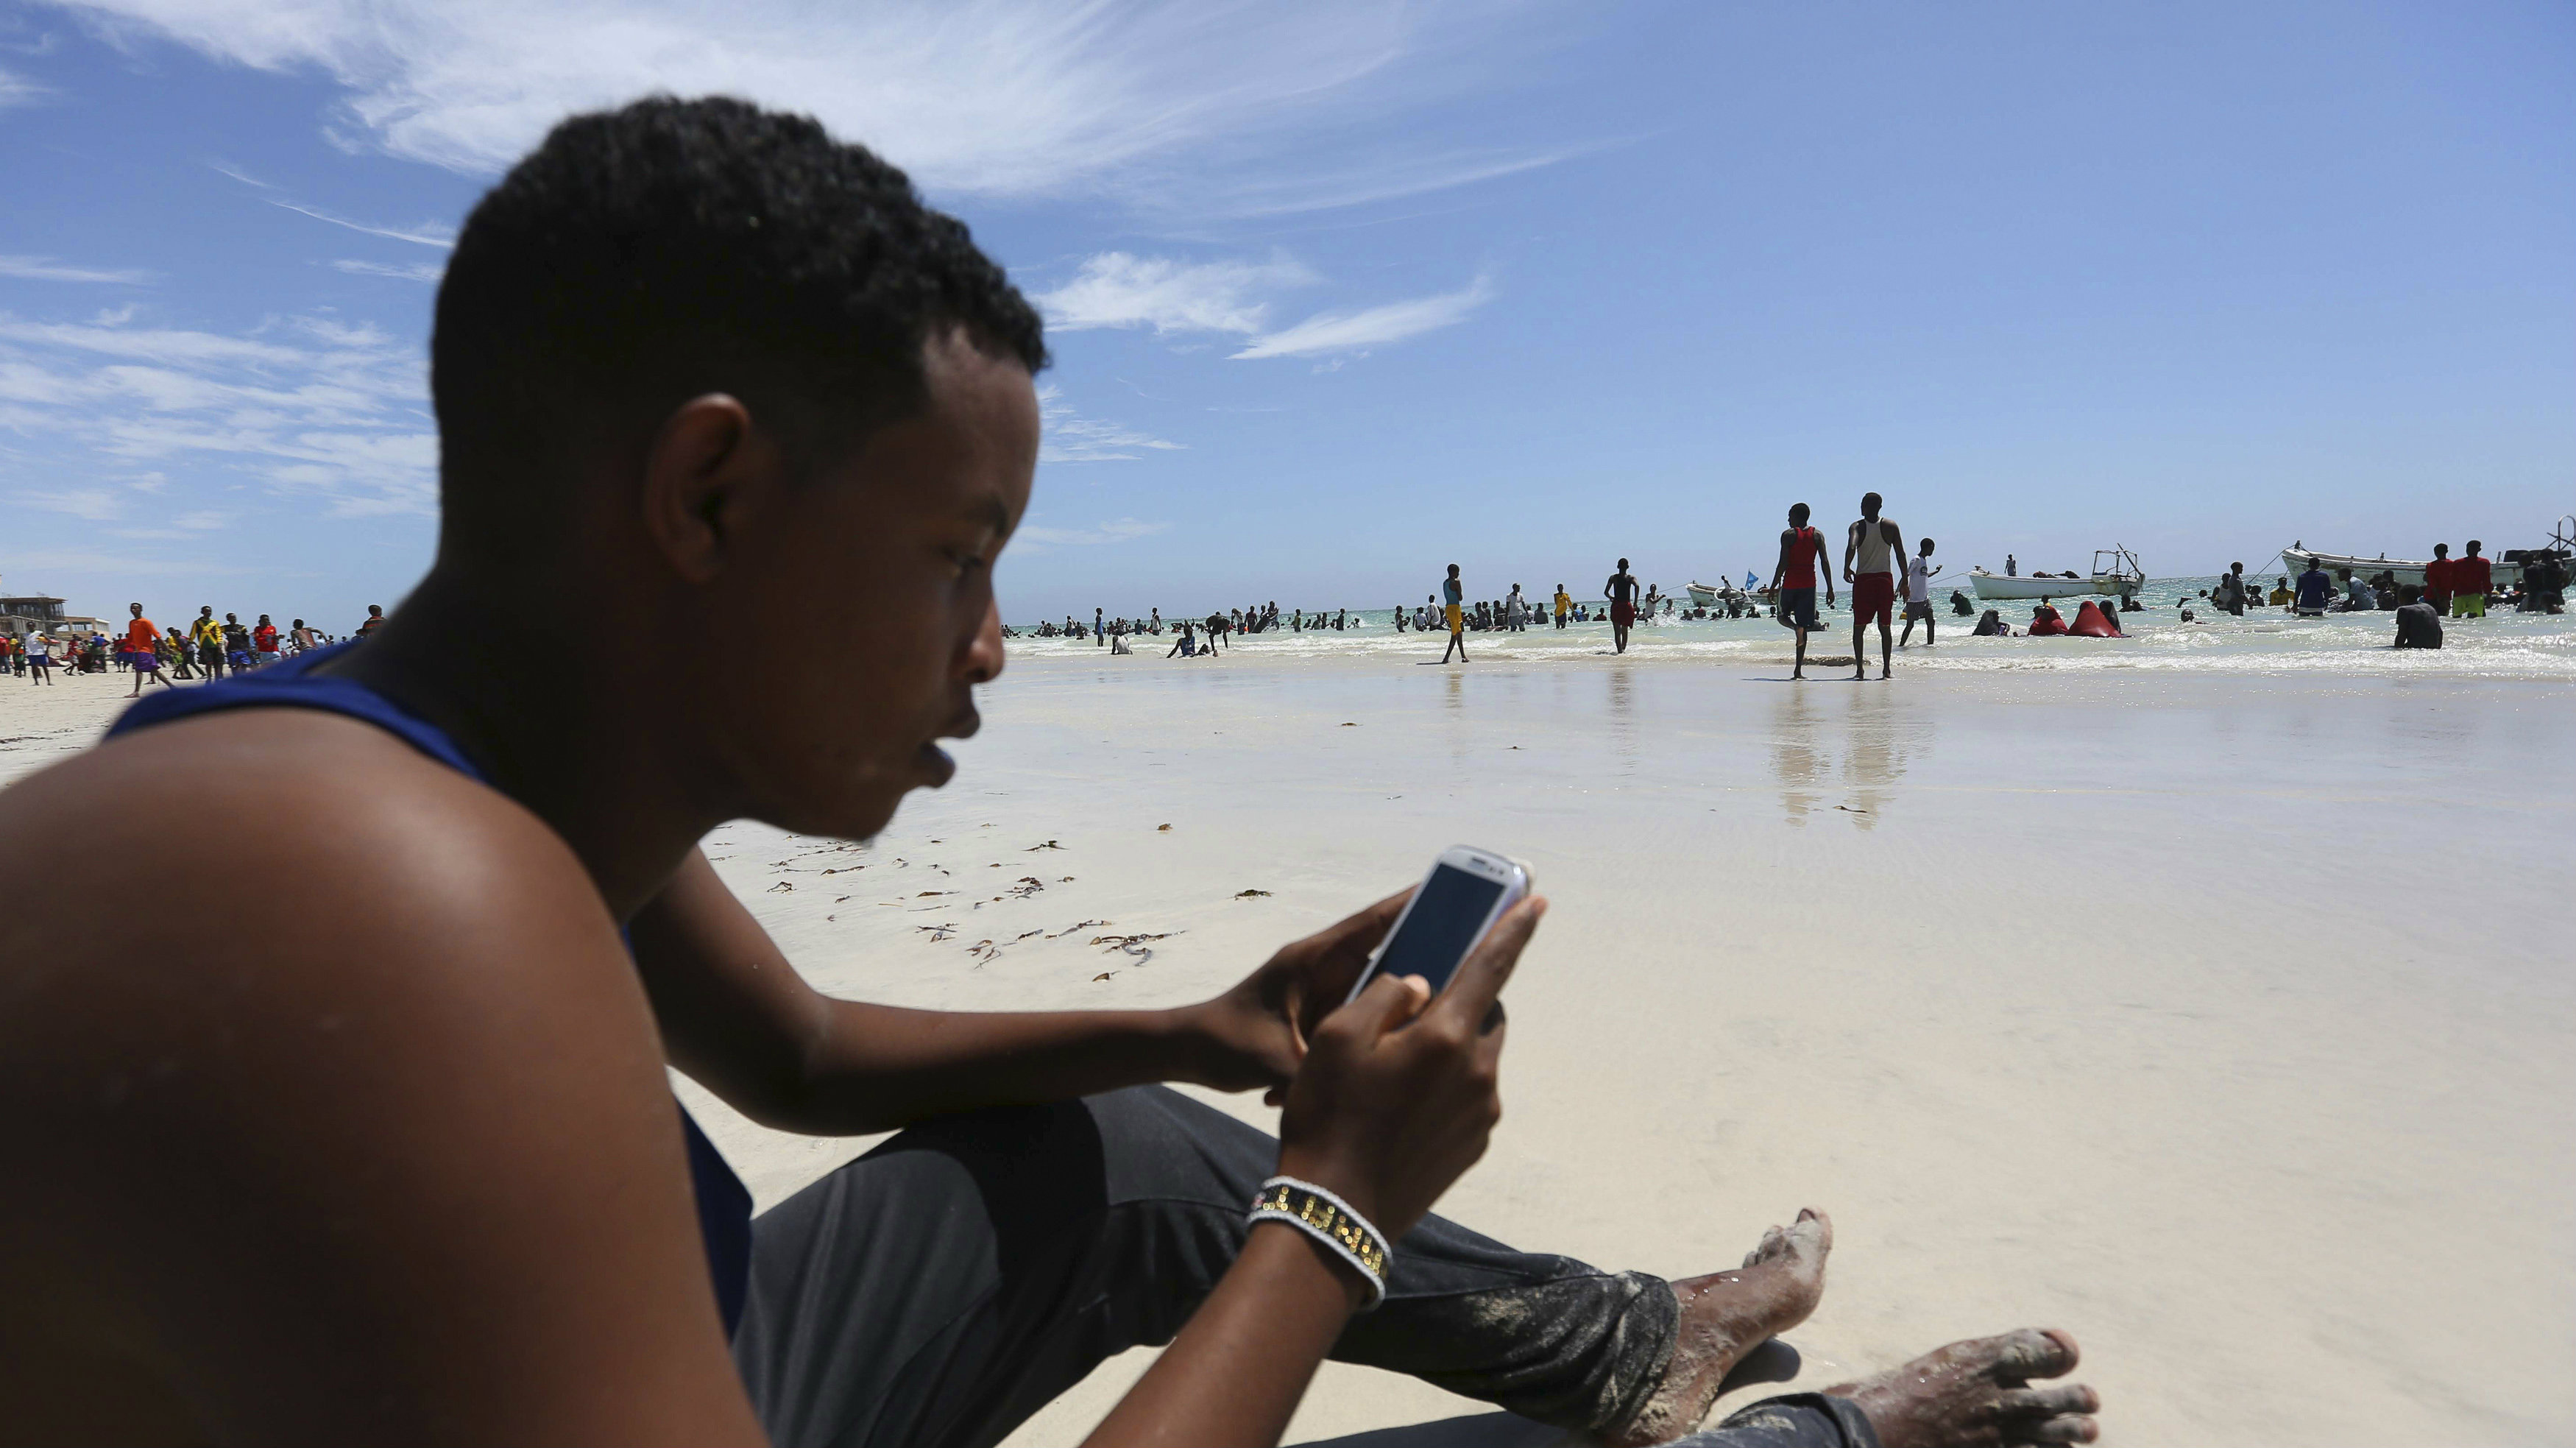 A Somali man browses the internet on his mobile phone at a beach along the Indian Ocean coastline in Somalia's capital Mogadishu, January 10, 2014.